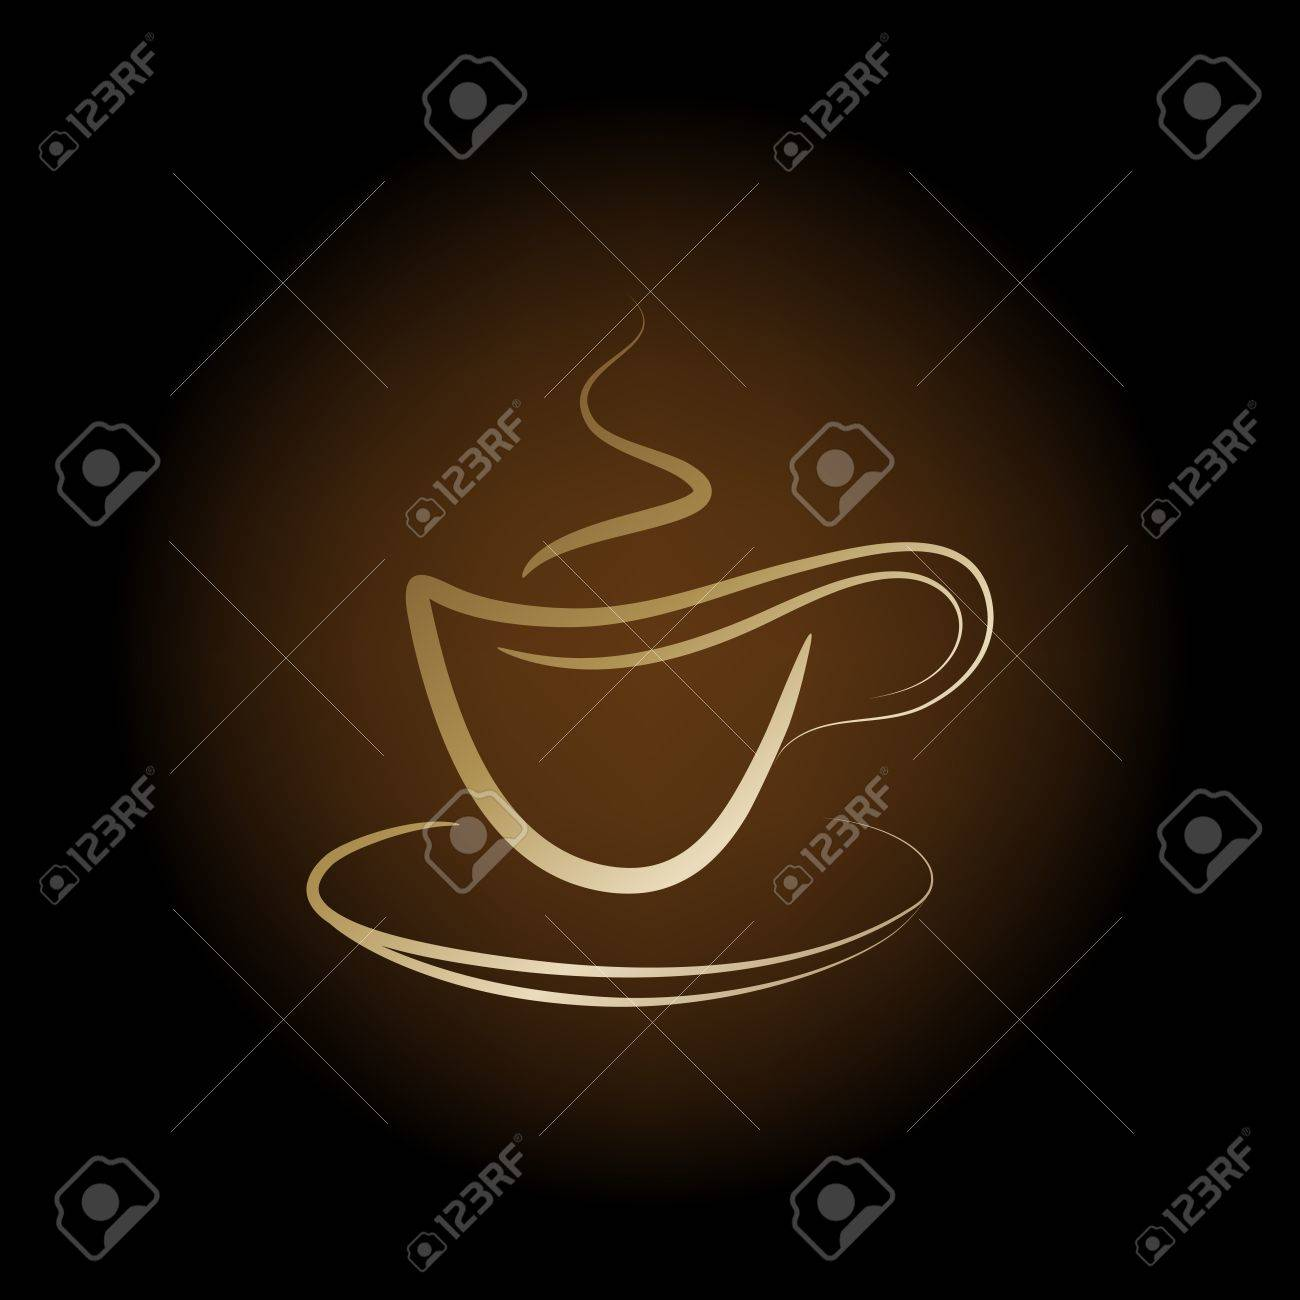 design golden cup off coffee on a brown background - 11671539